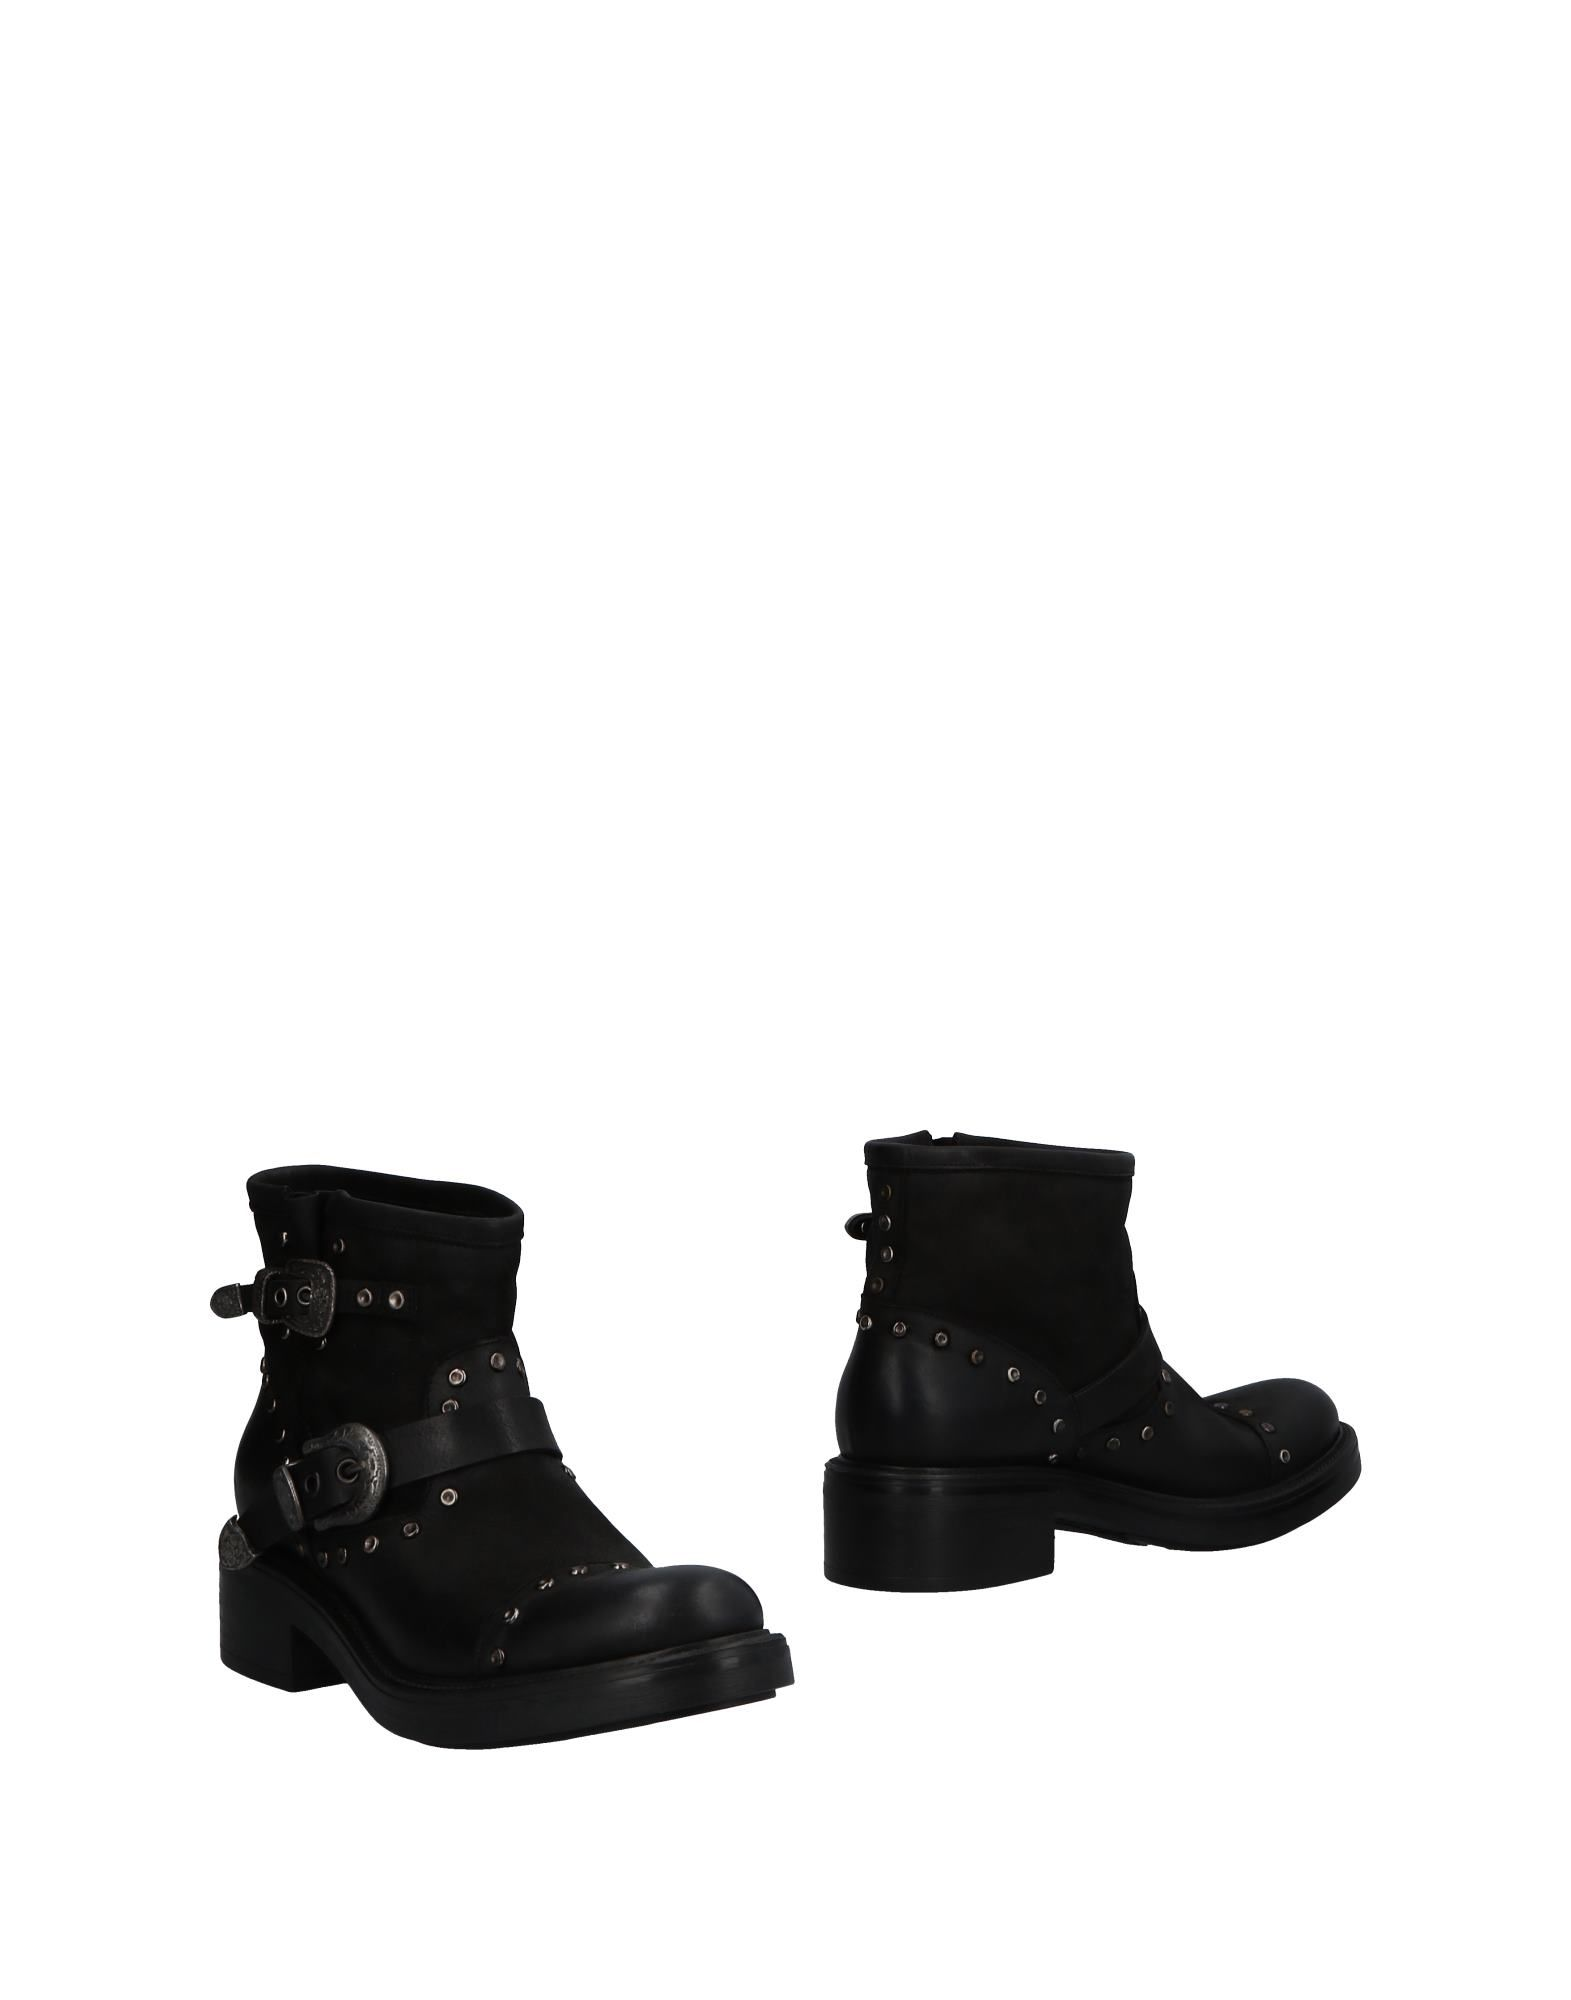 Strategia Ankle Boot - Women Strategia  Ankle Boots online on  Strategia United Kingdom - 11492472FI 4f1c92